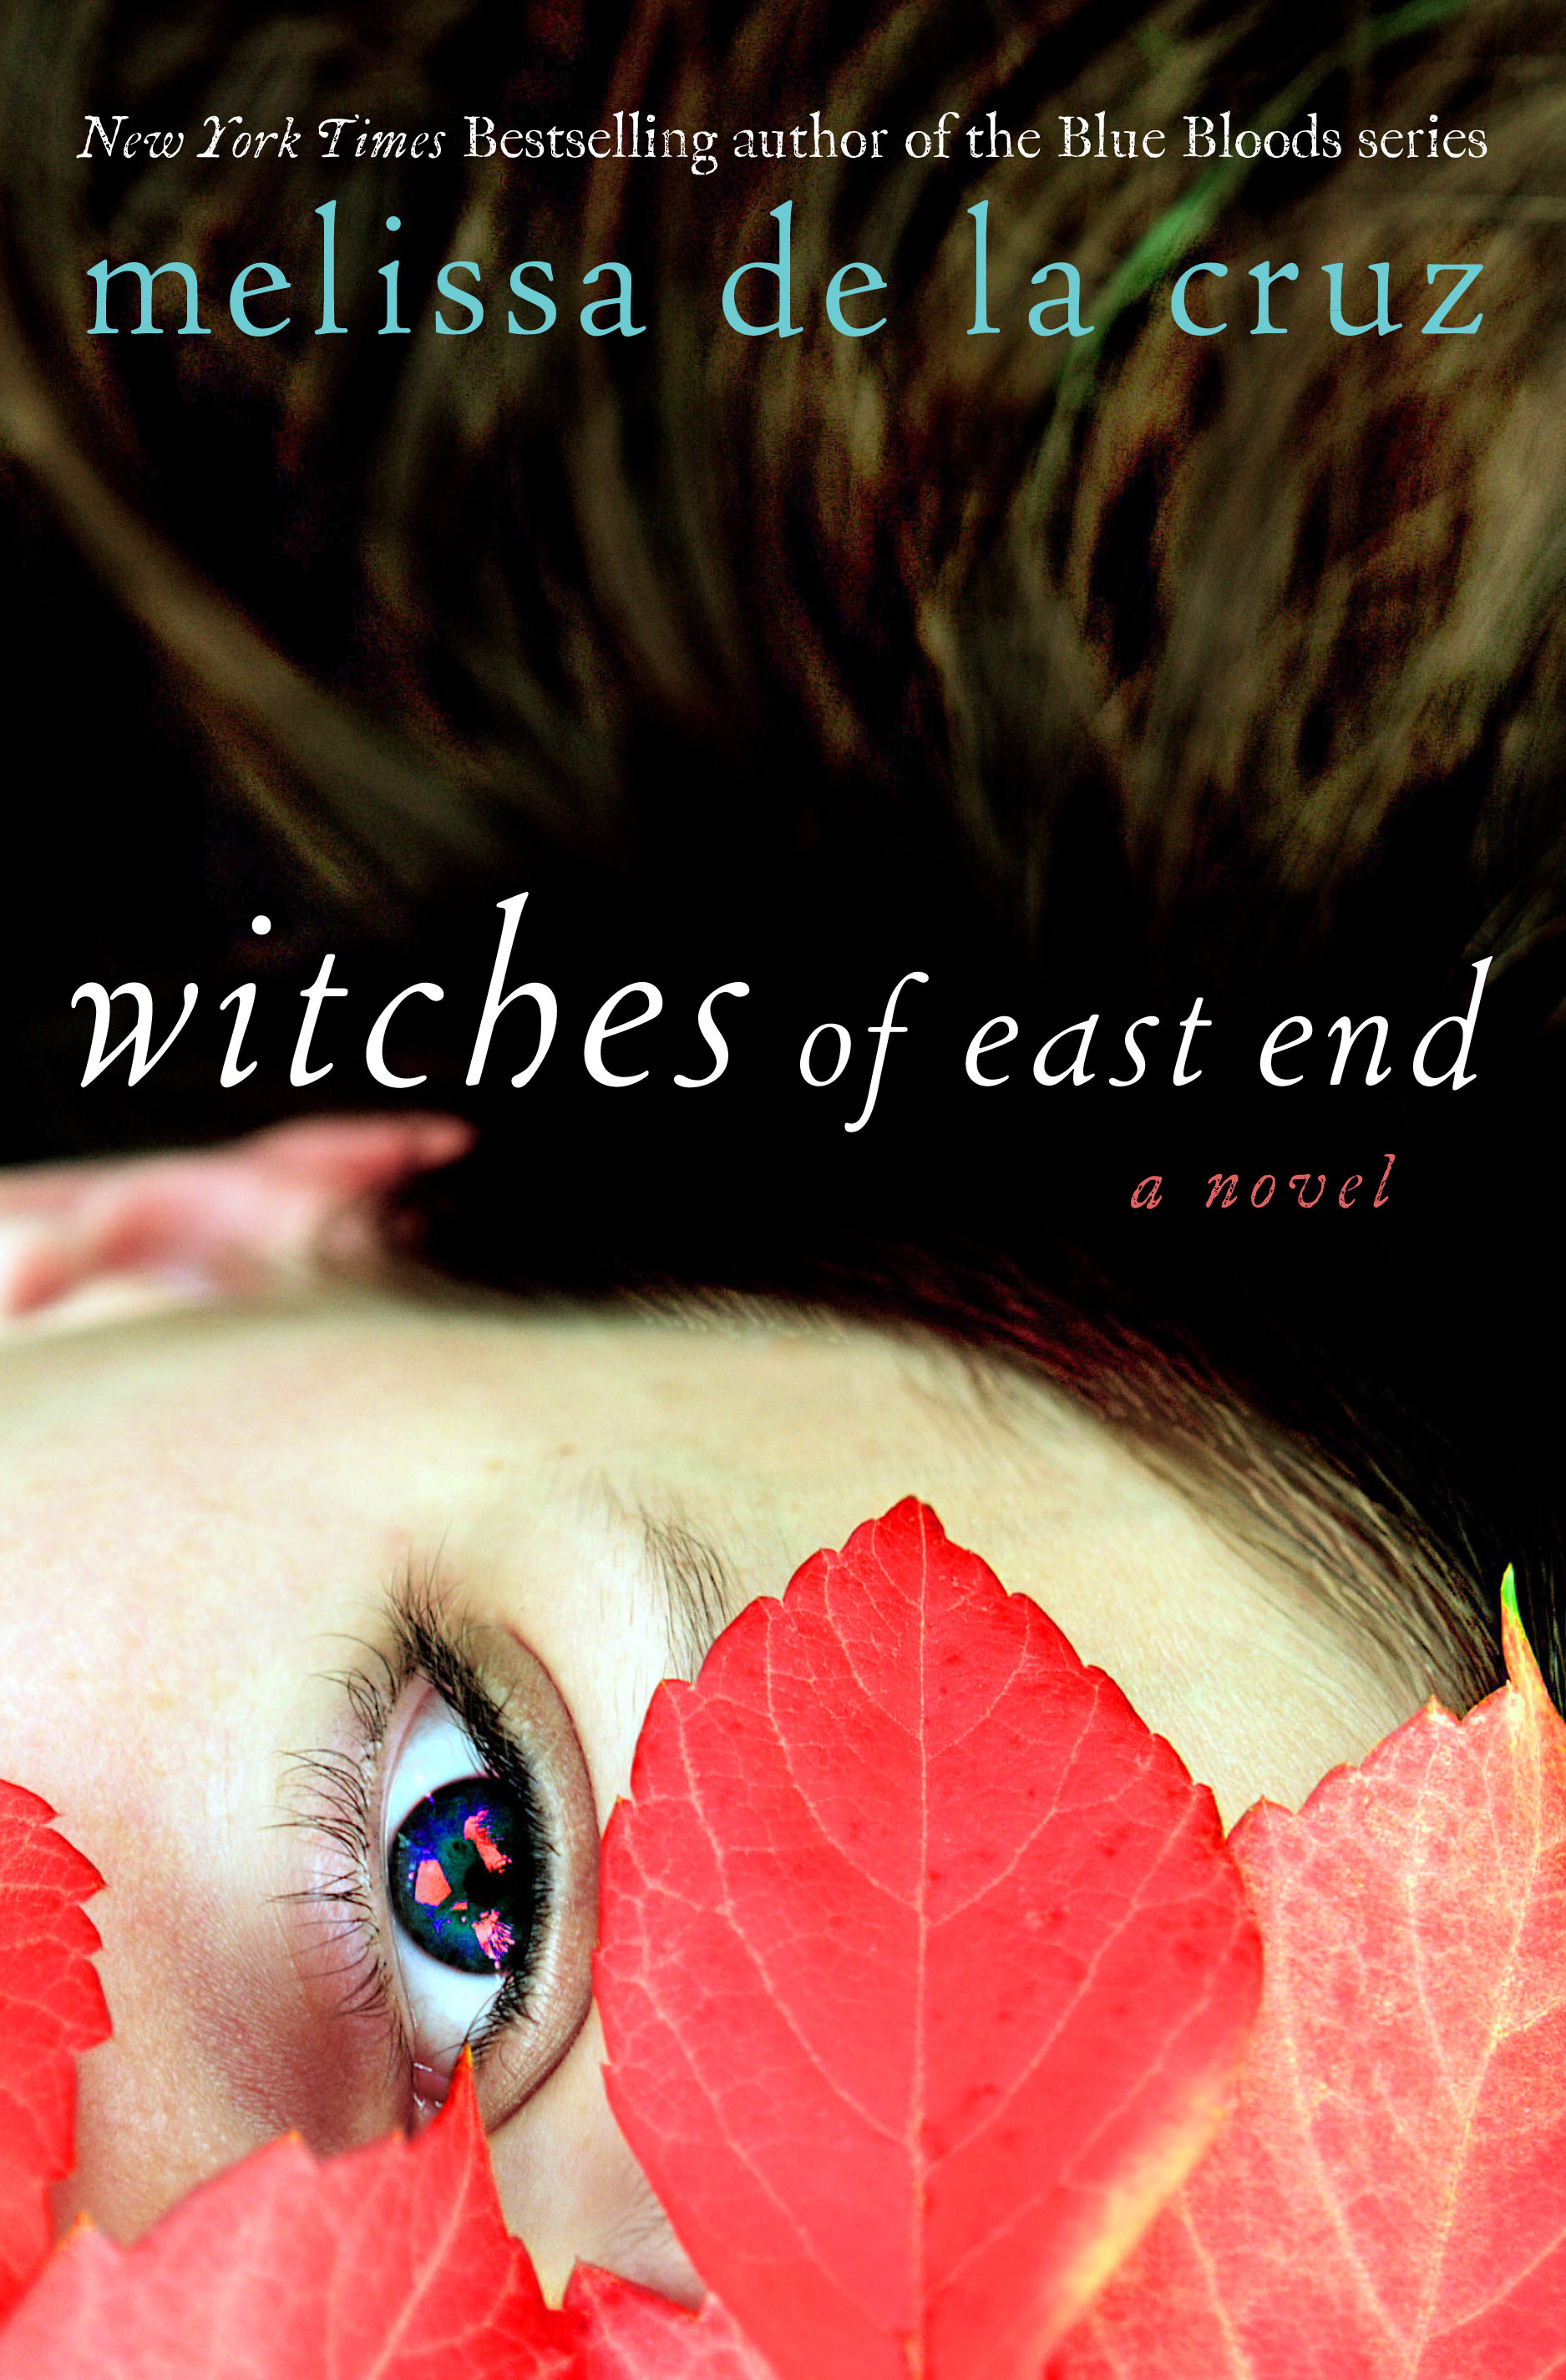 Witches of East End (Book) | Blue Bloods Universe Wiki ...